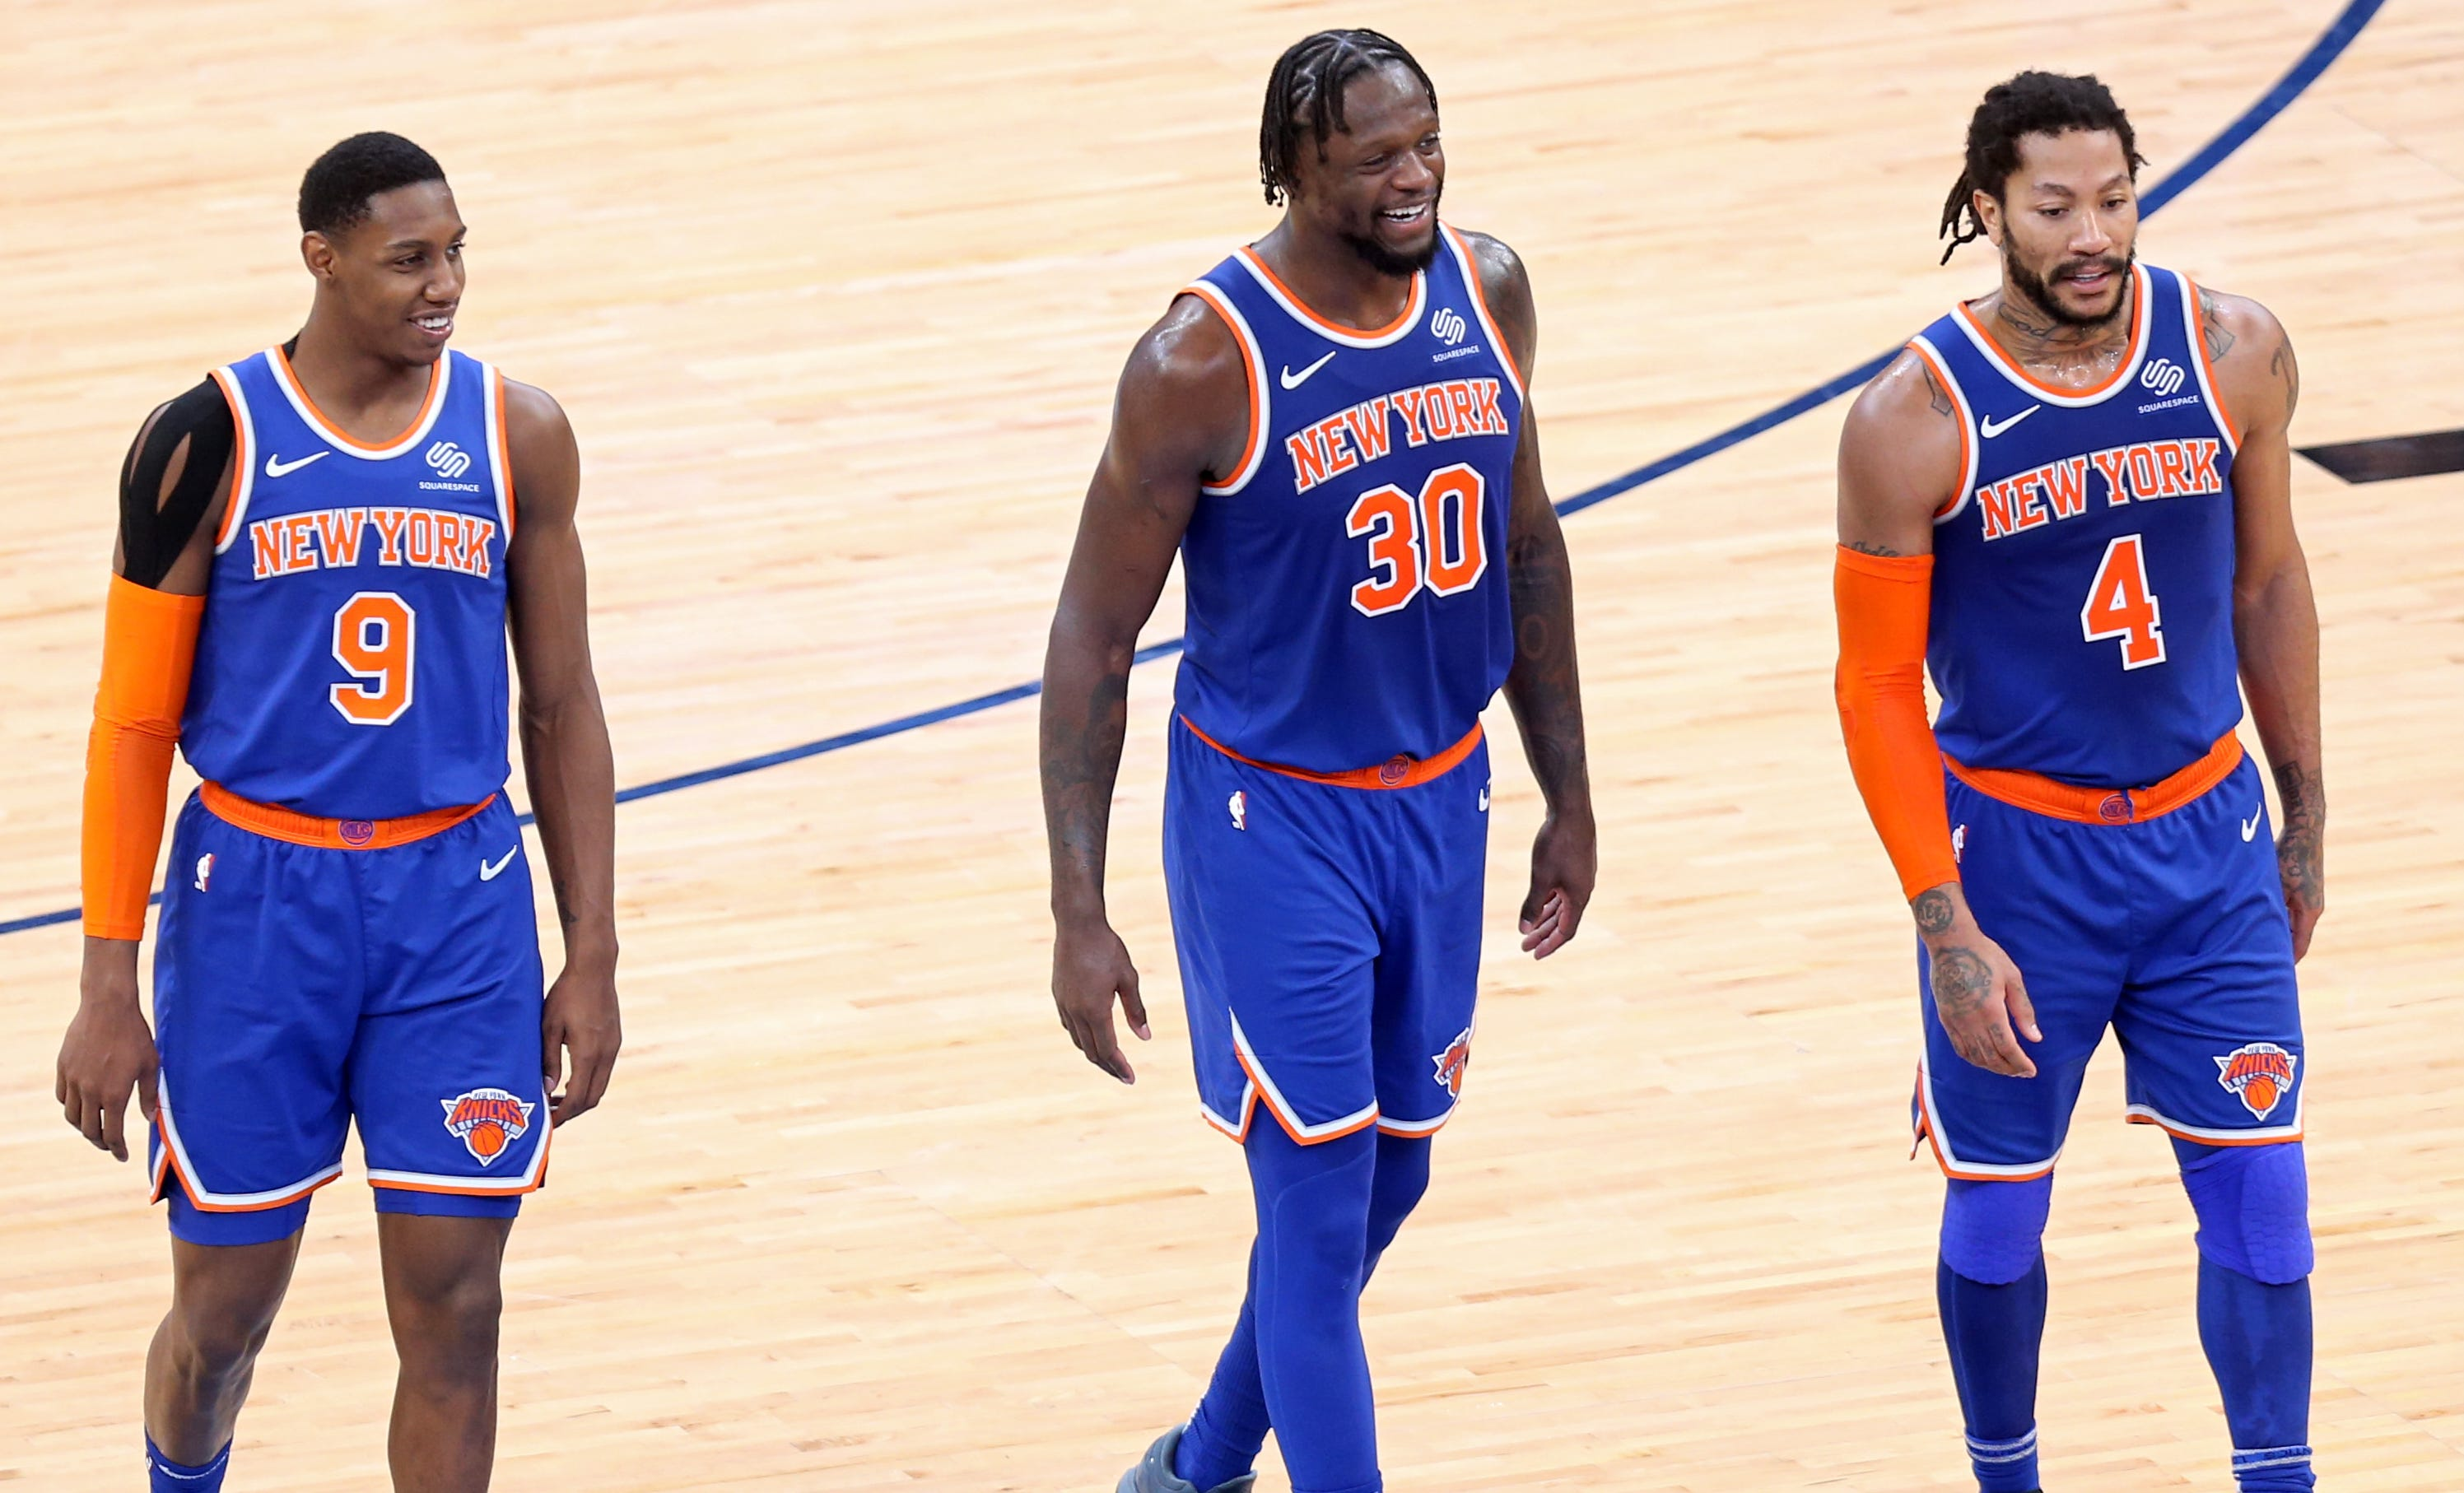 Knicks clinch playoff spot for first time since 2012-13 season